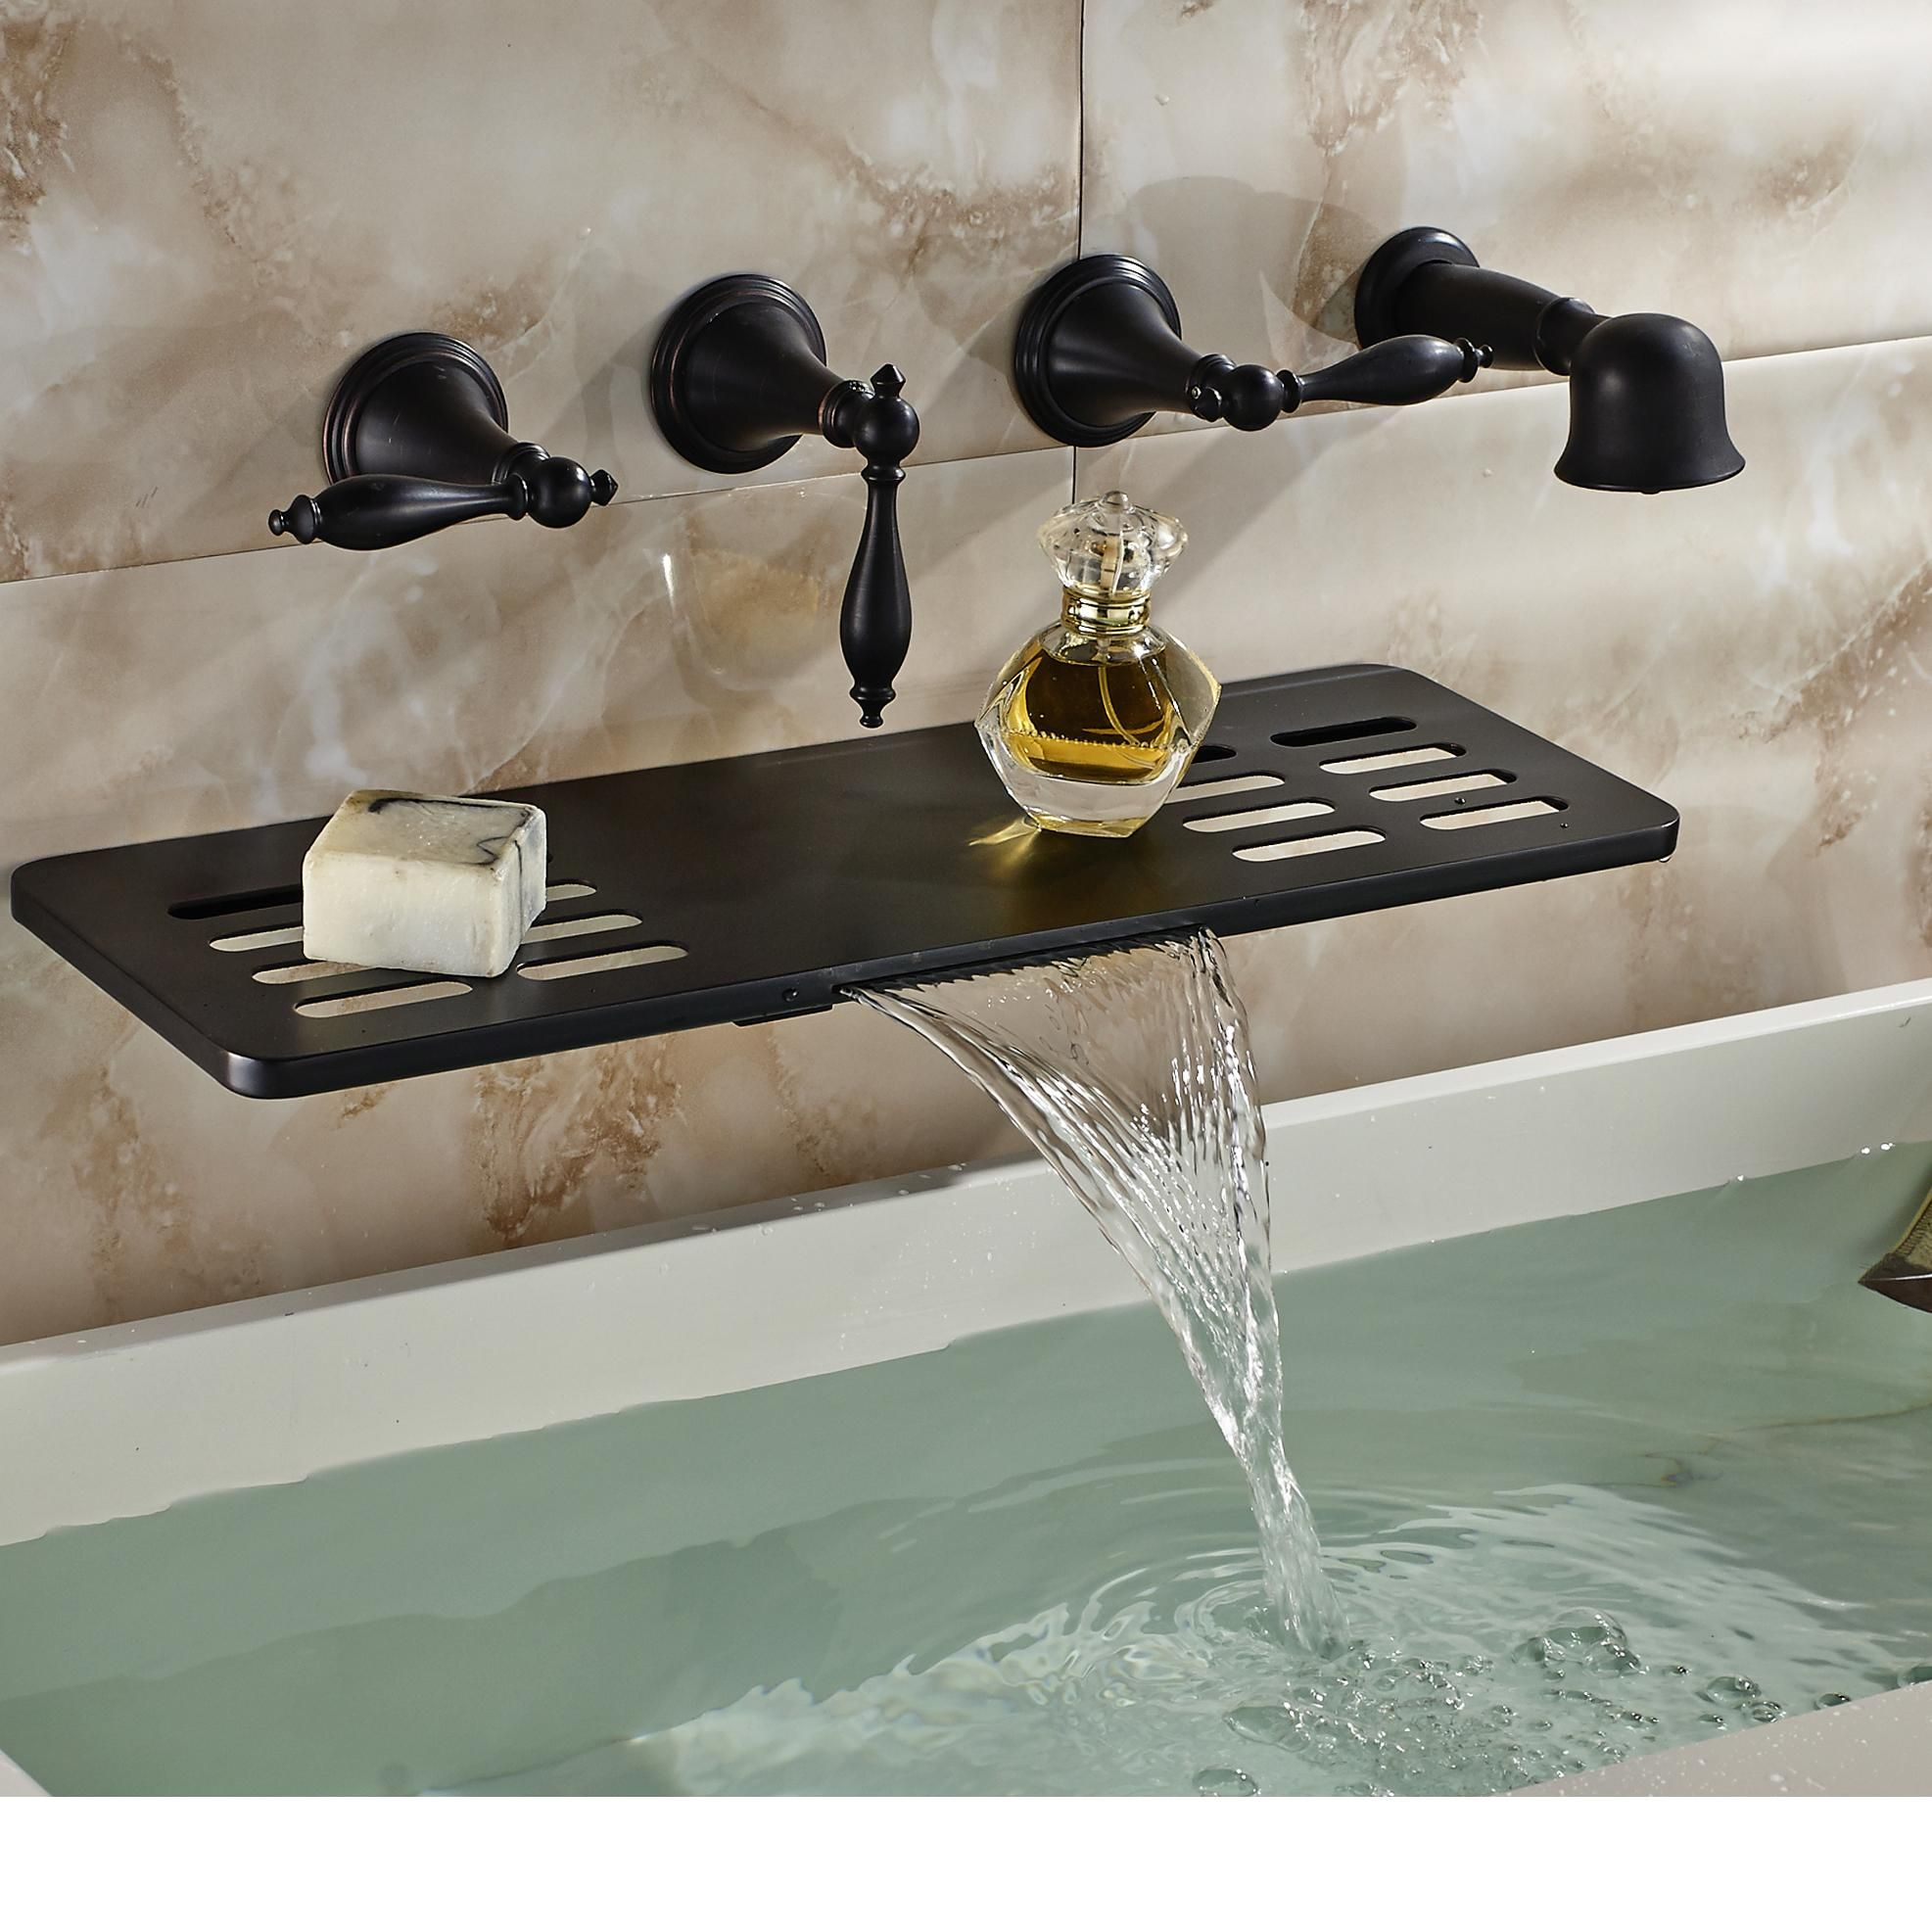 hole rubbed style faucet modern installation in faucets bathroom oil handle single one bronze waterfall sink